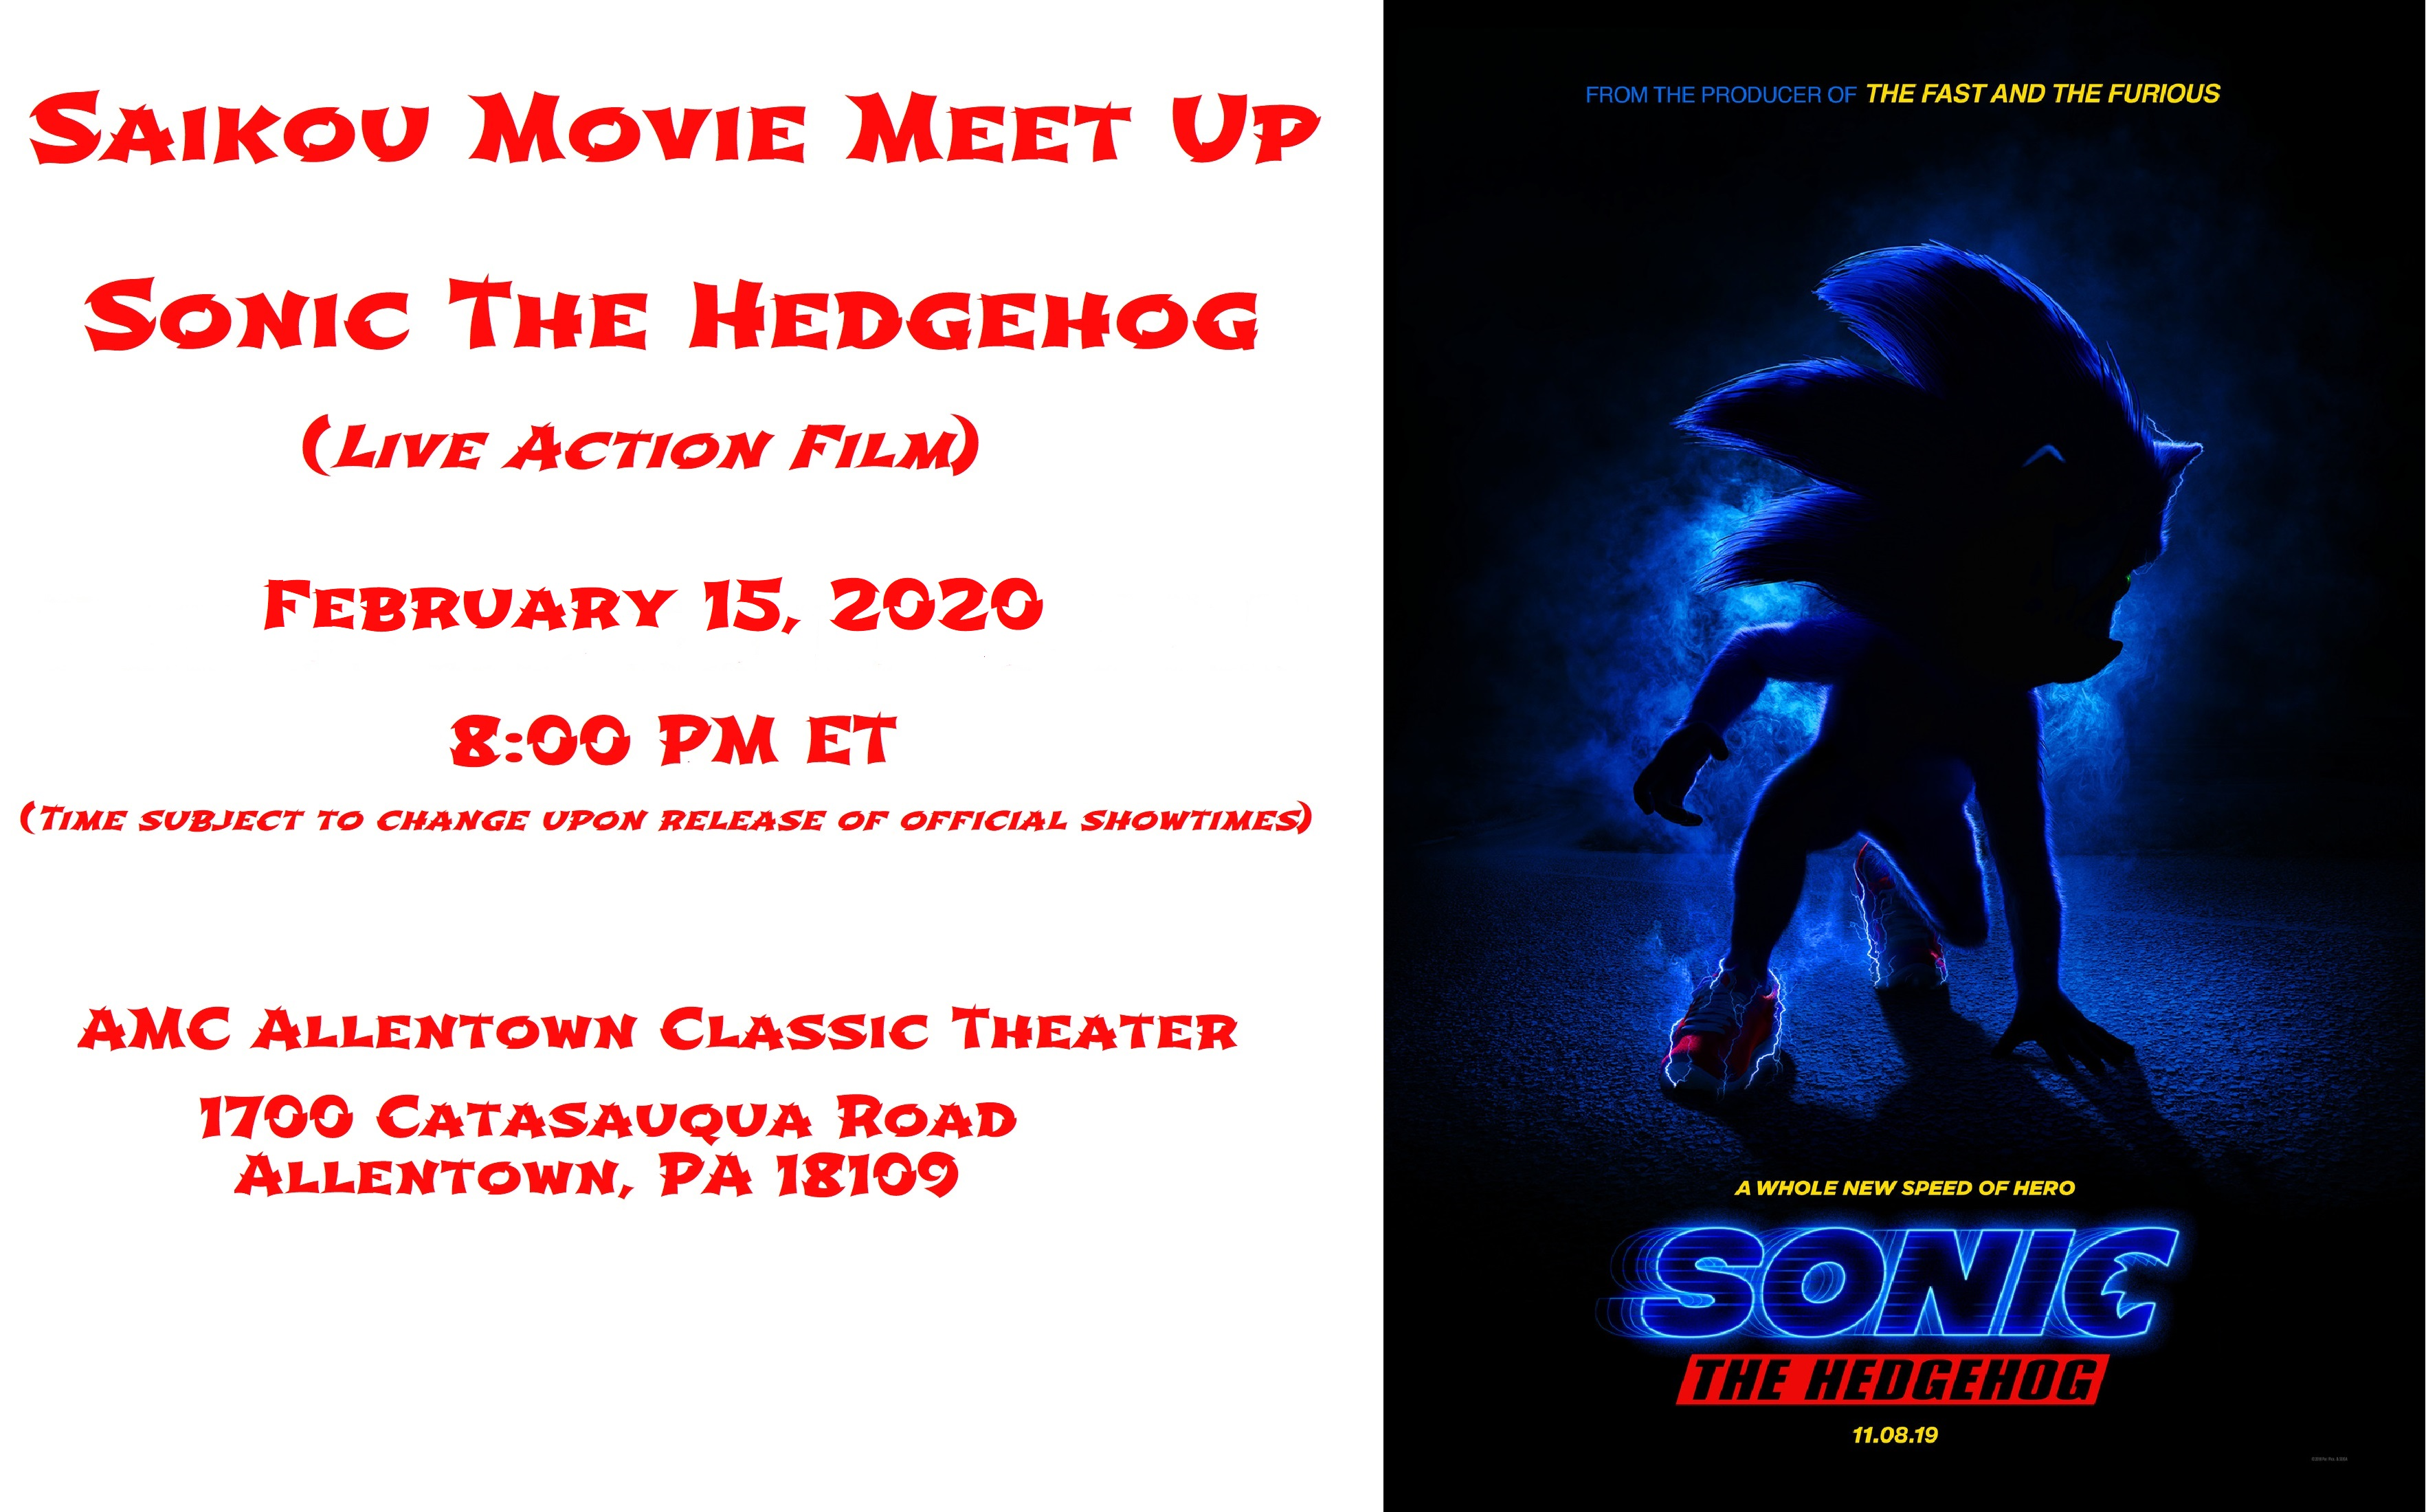 Saikou Movie Meet Up - Sonic The Hedgehog_New Release Date